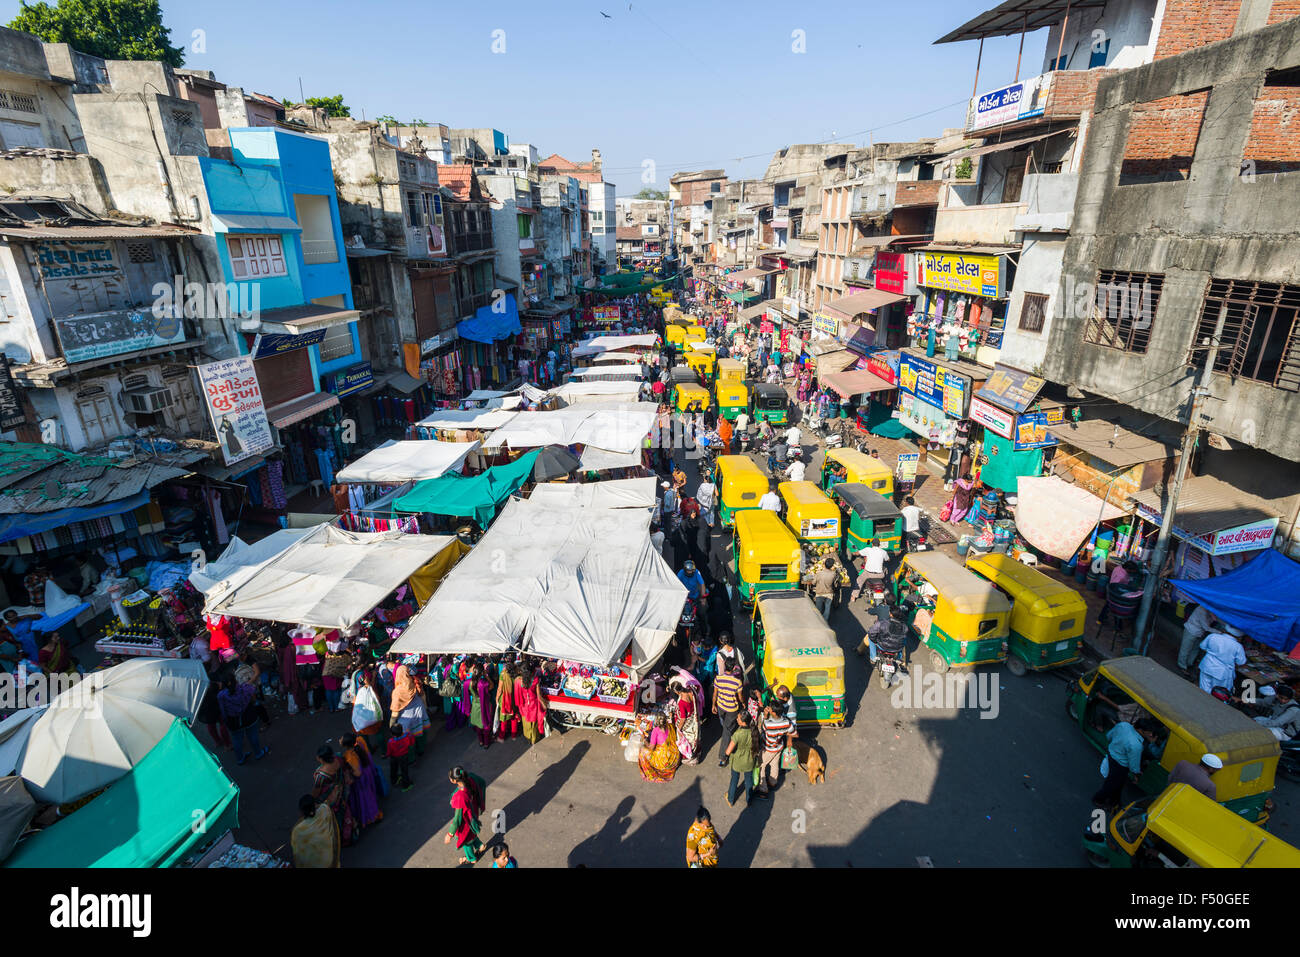 A crowded street with shops and traffic jam in the old city market area - Stock Image